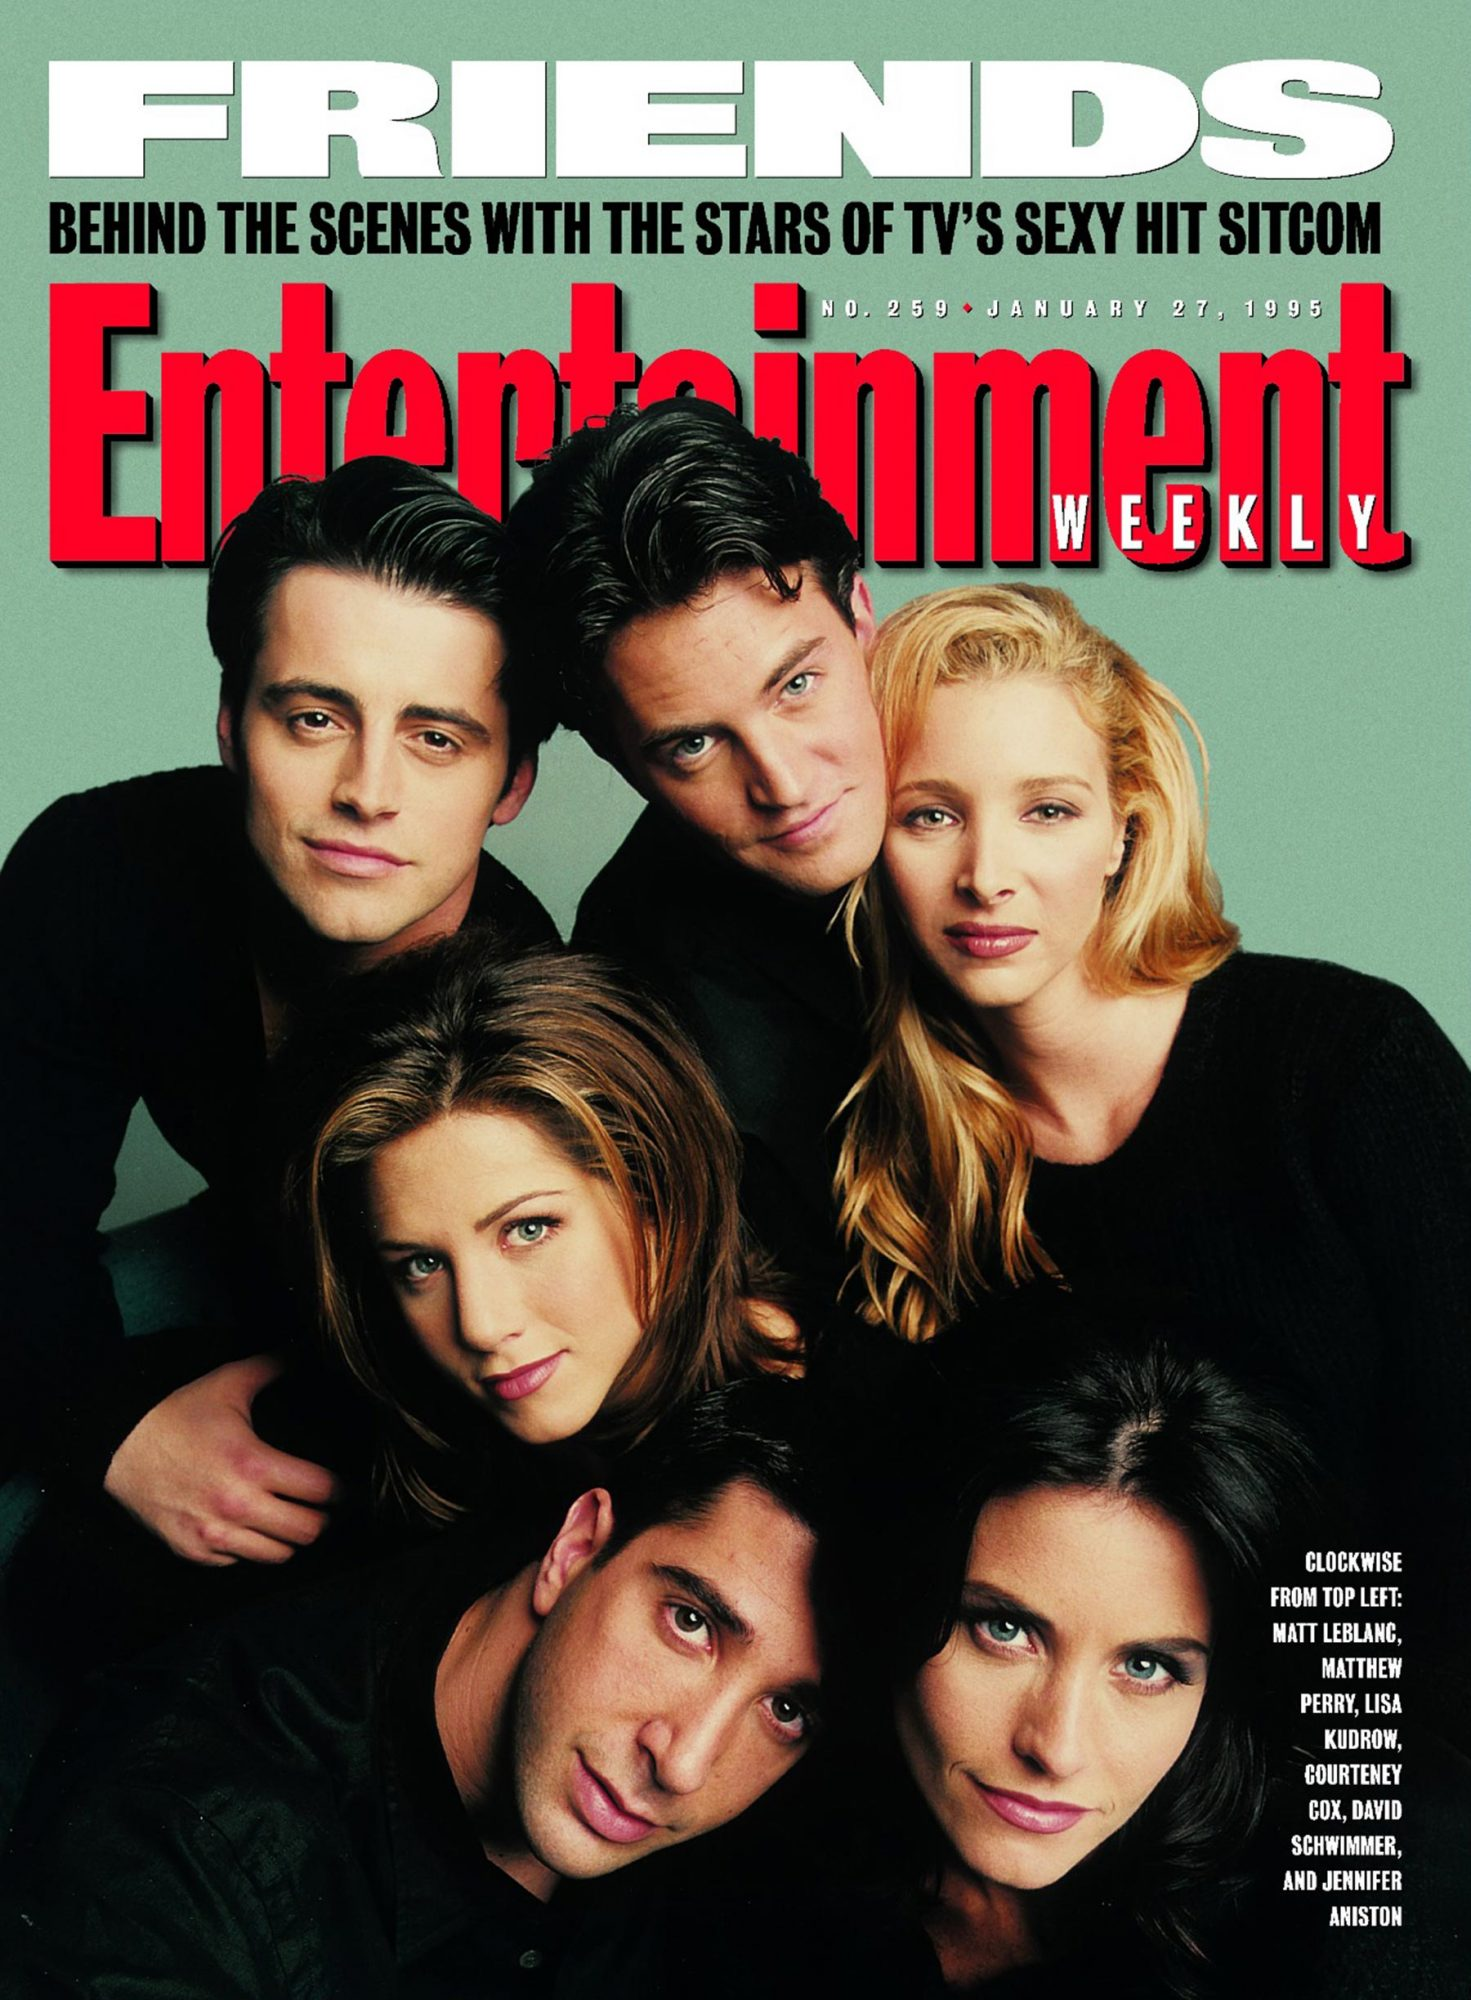 Entertainment Weekly coverIssue# 259 - 1/27/1995Friends